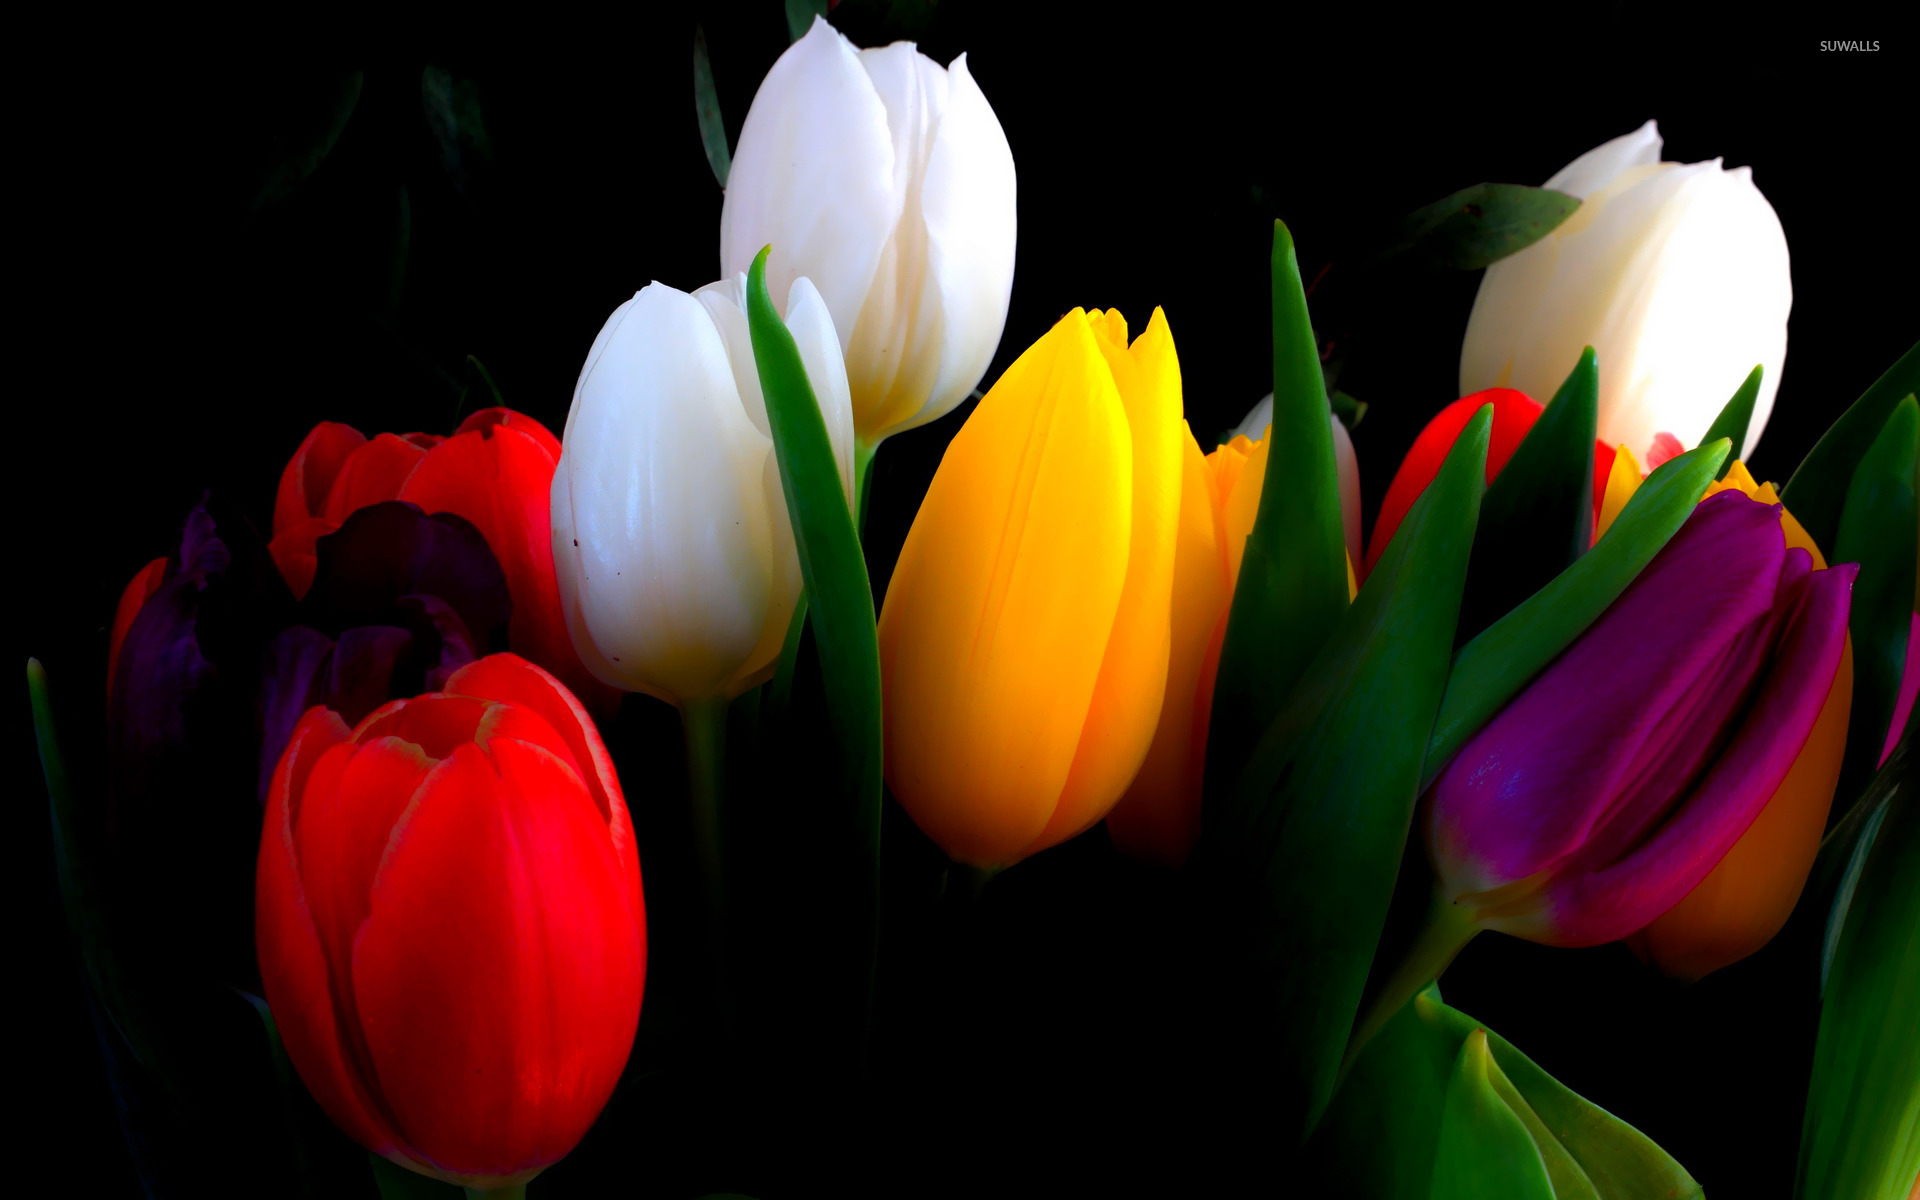 colorful tulip flowers - photo #4